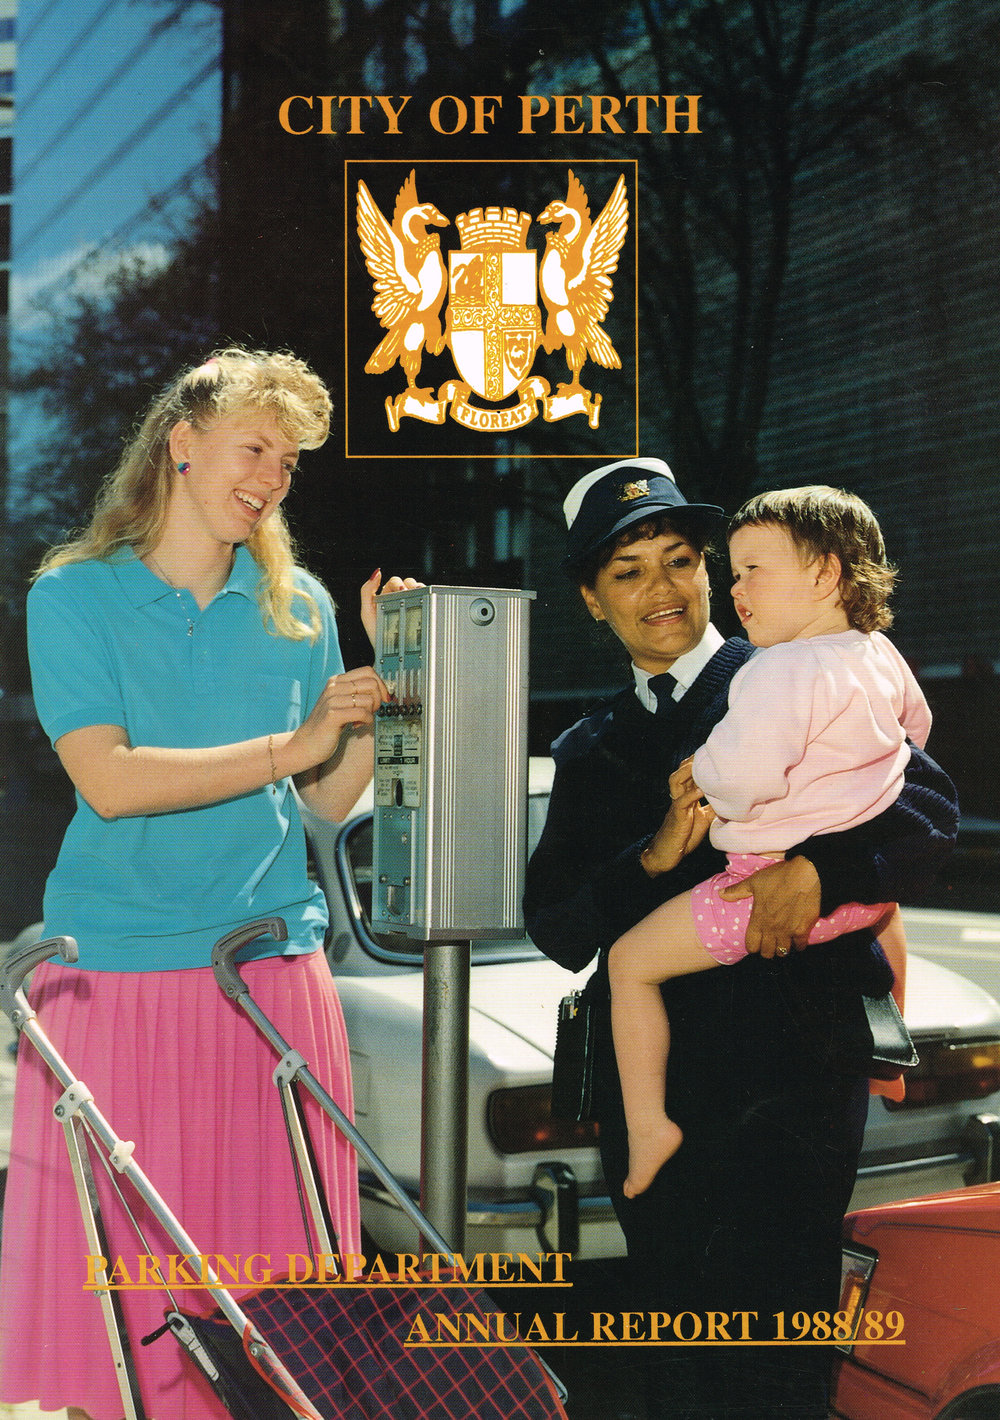 City of Perth Parking Department Annual Report 88-89  City of Perth Parking Department